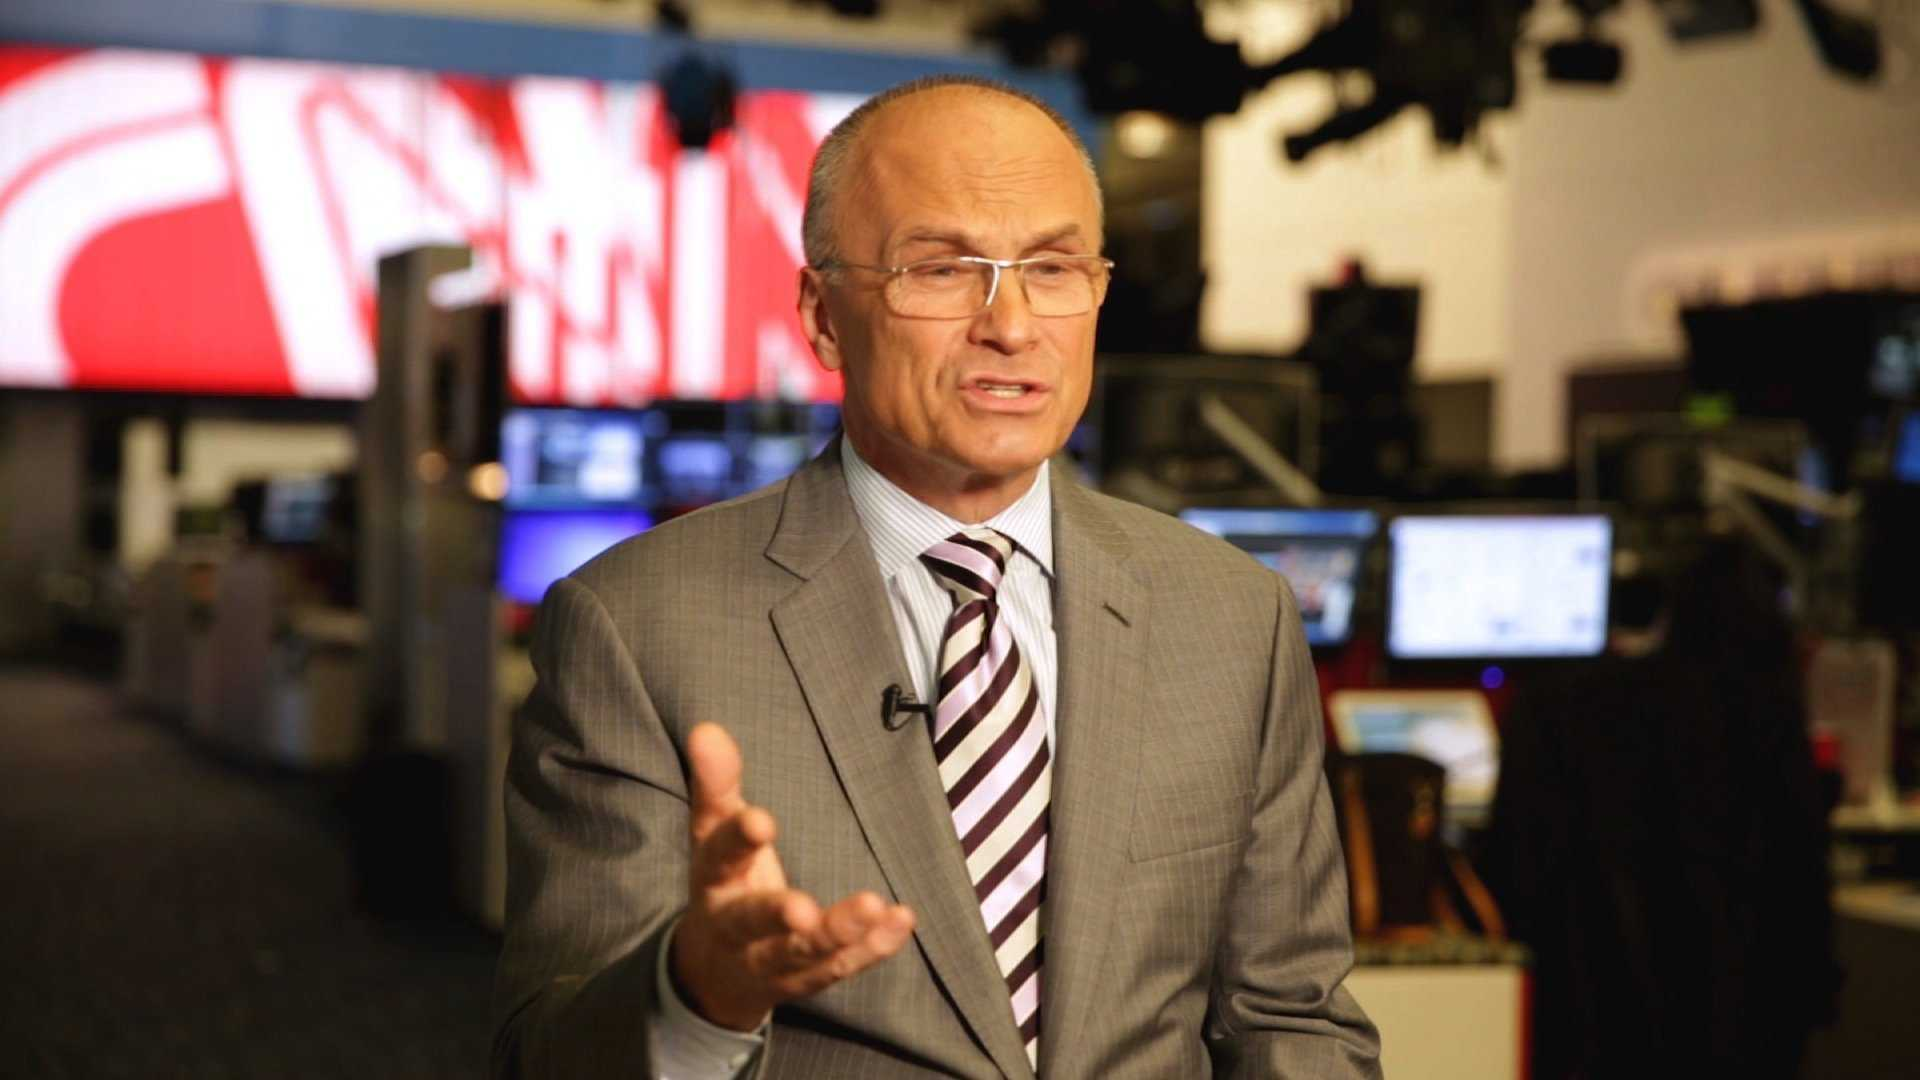 Andrew Puzder, President Donald Trump's pick to lead the Labor Department